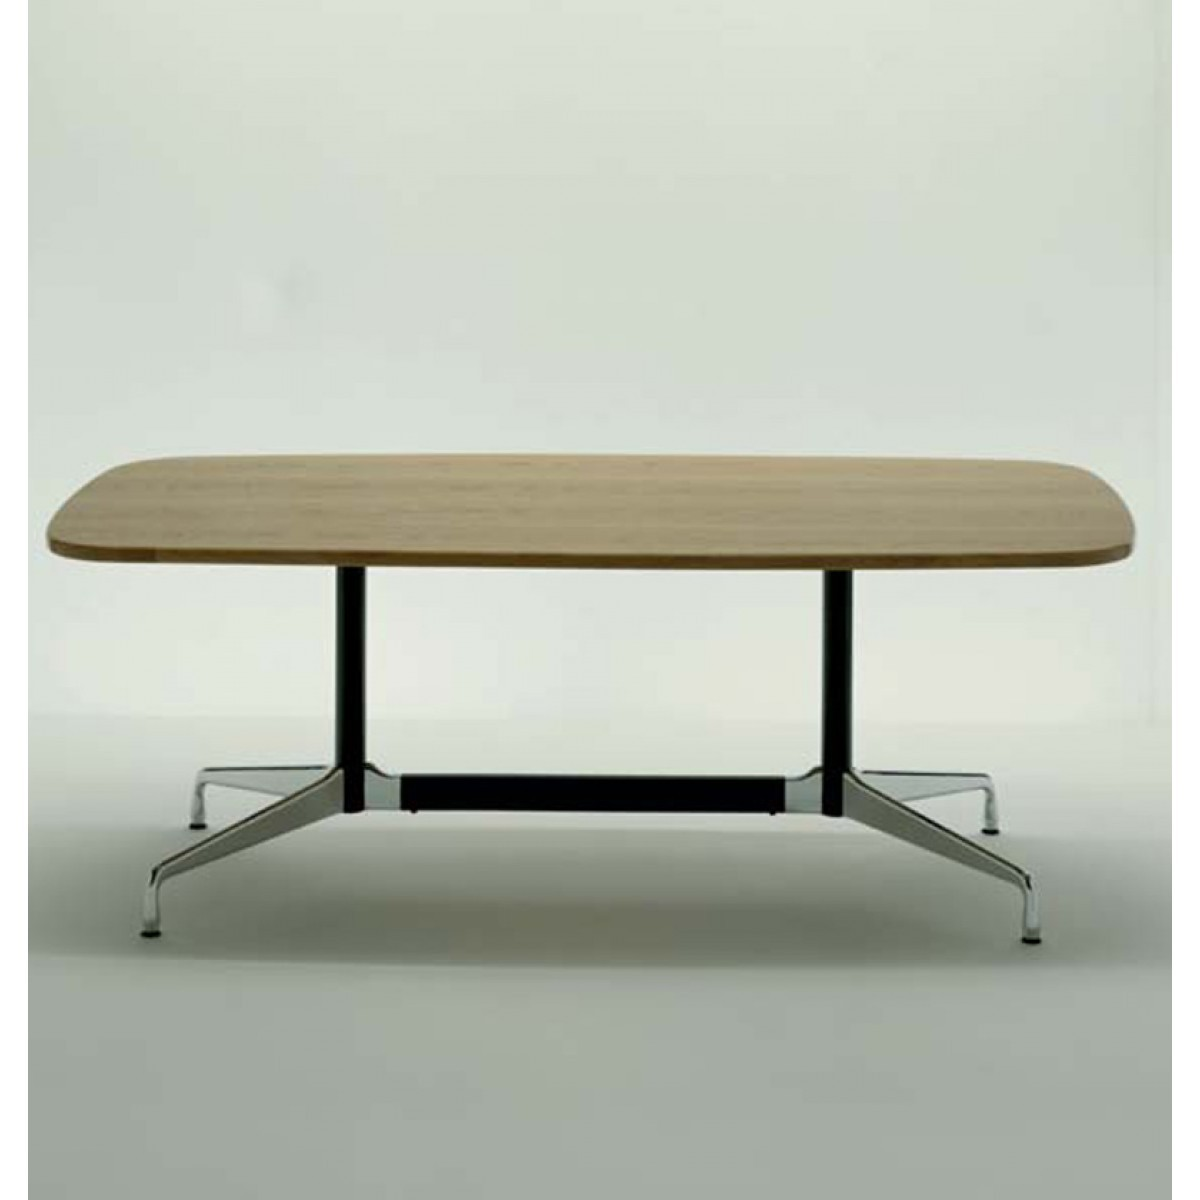 Esstisch Eames Vitra Eames Table Segmented Table